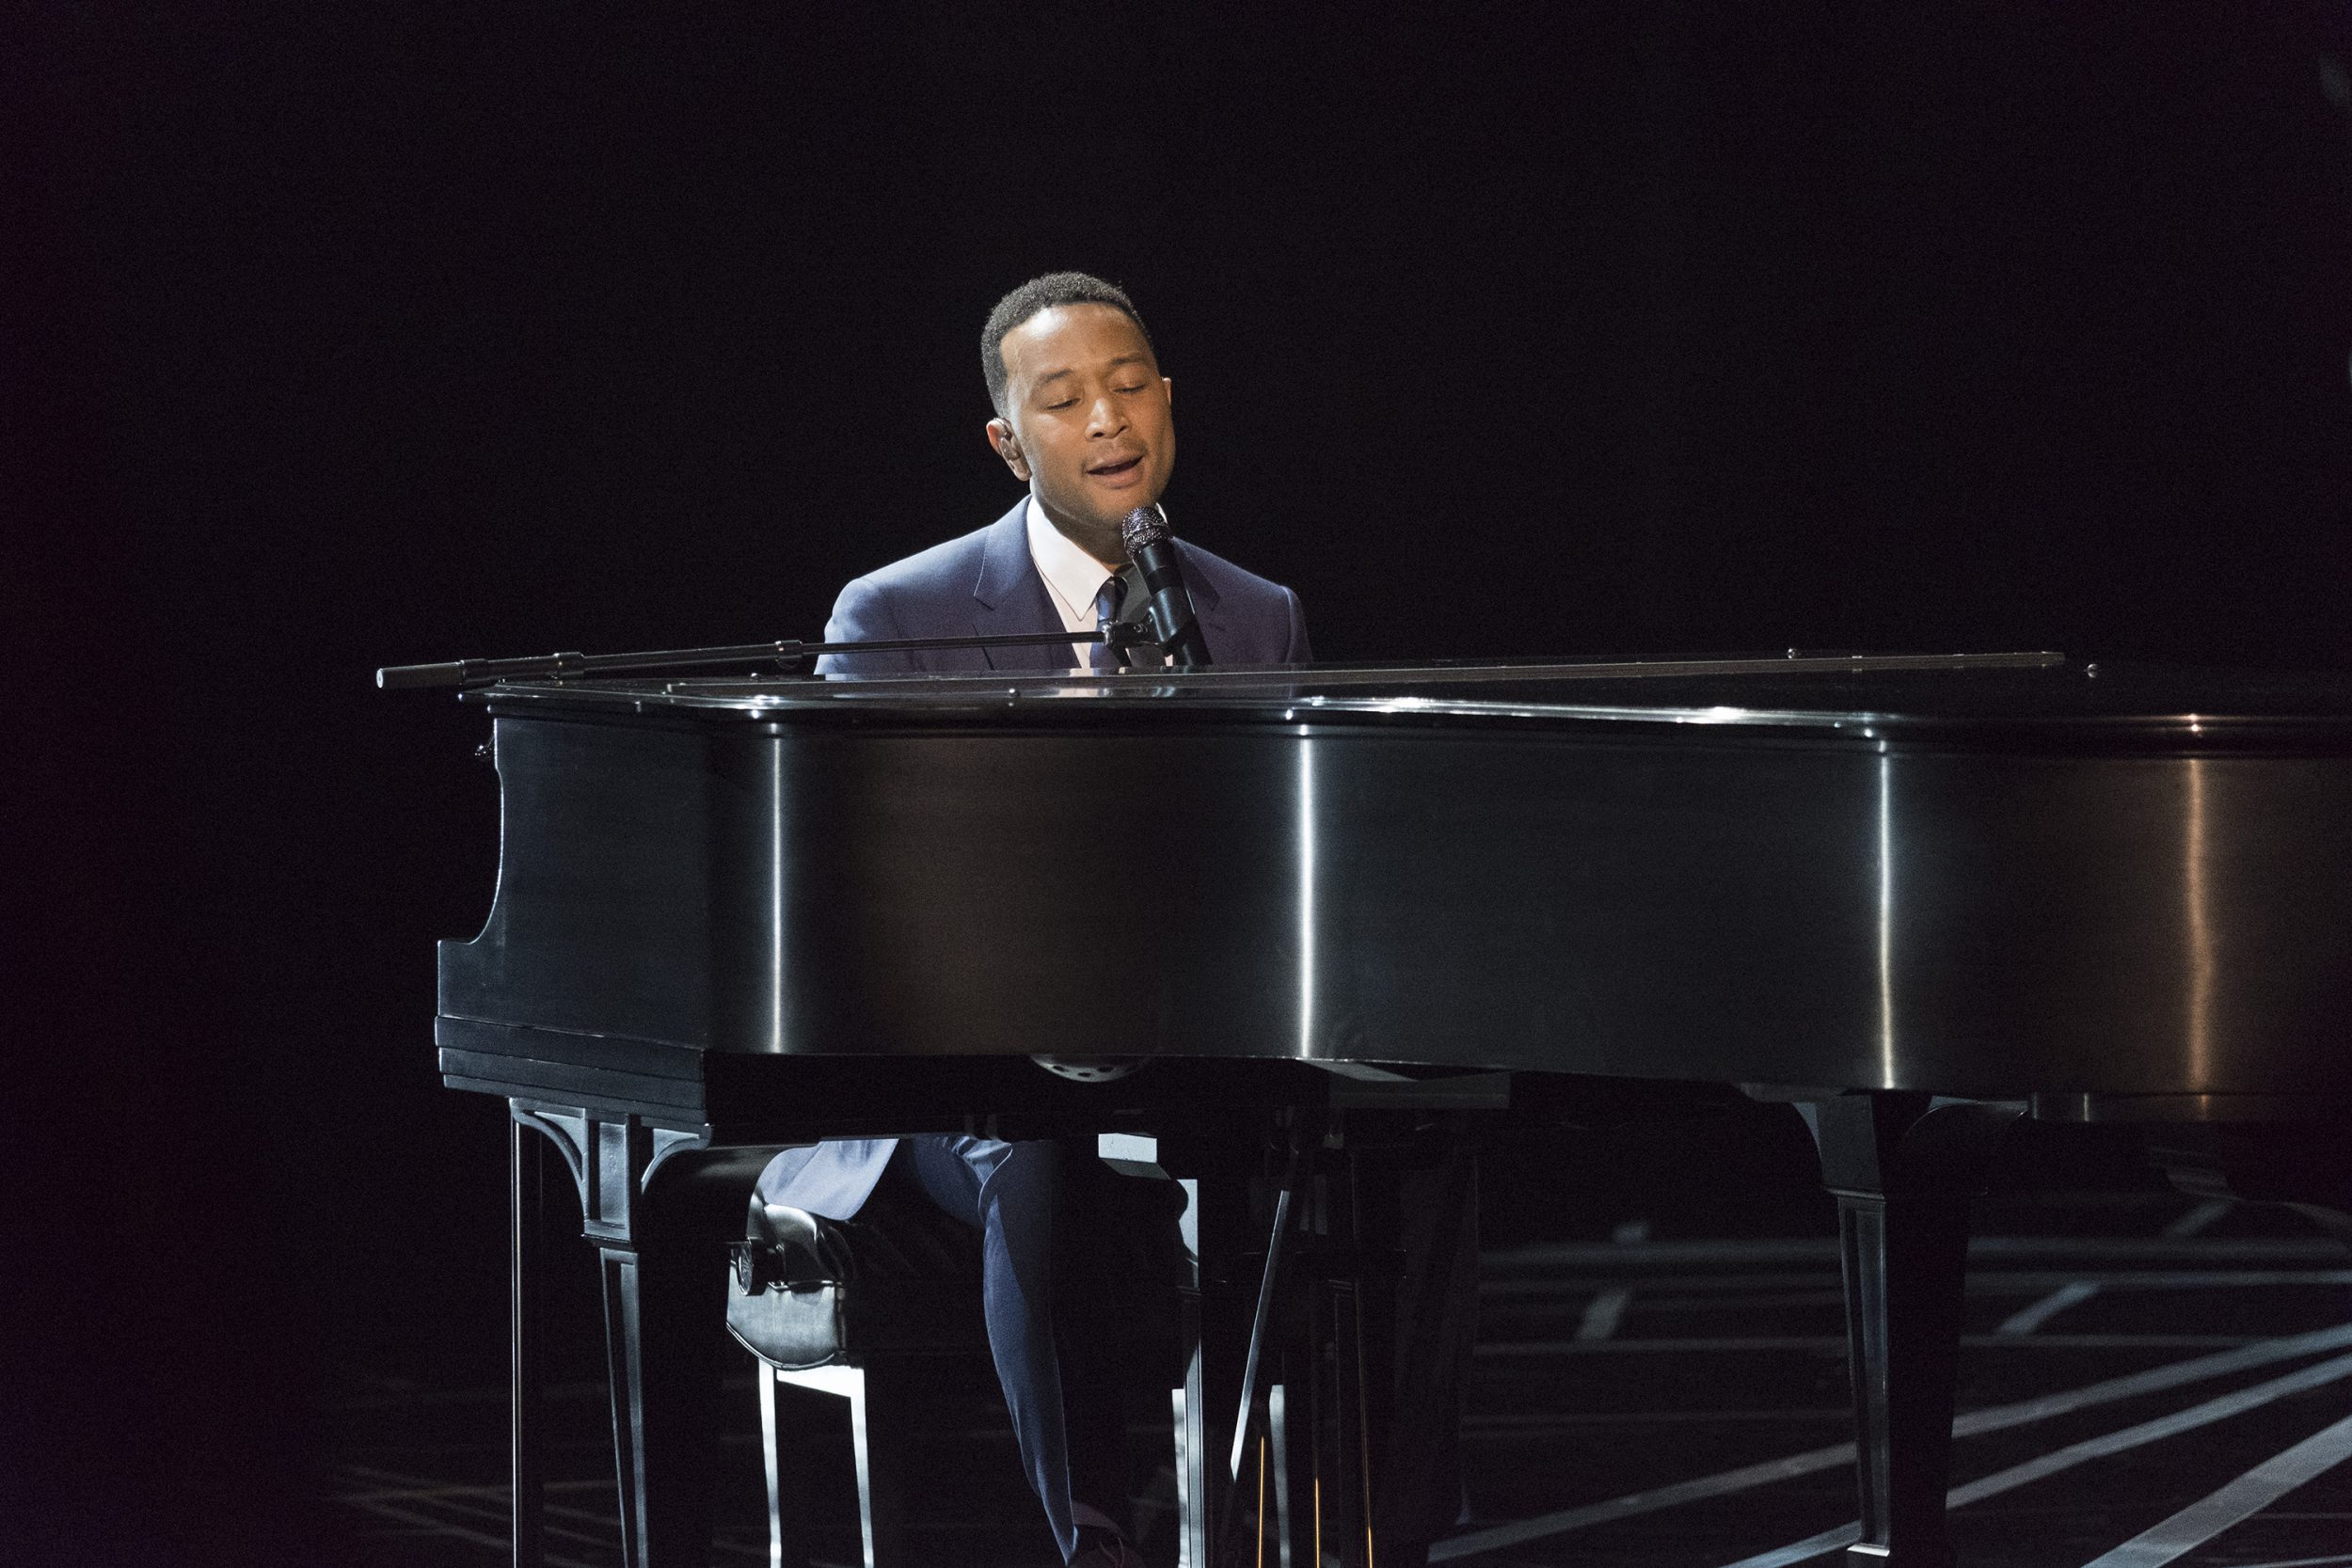 THE OSCARS(r) - The 89th Oscars(r)  broadcasts live on Oscar(r) SUNDAY, FEBRUARY 26, 2017, on the ABC Television Network. (ABC/Adam Rose) JOHN LEGEND